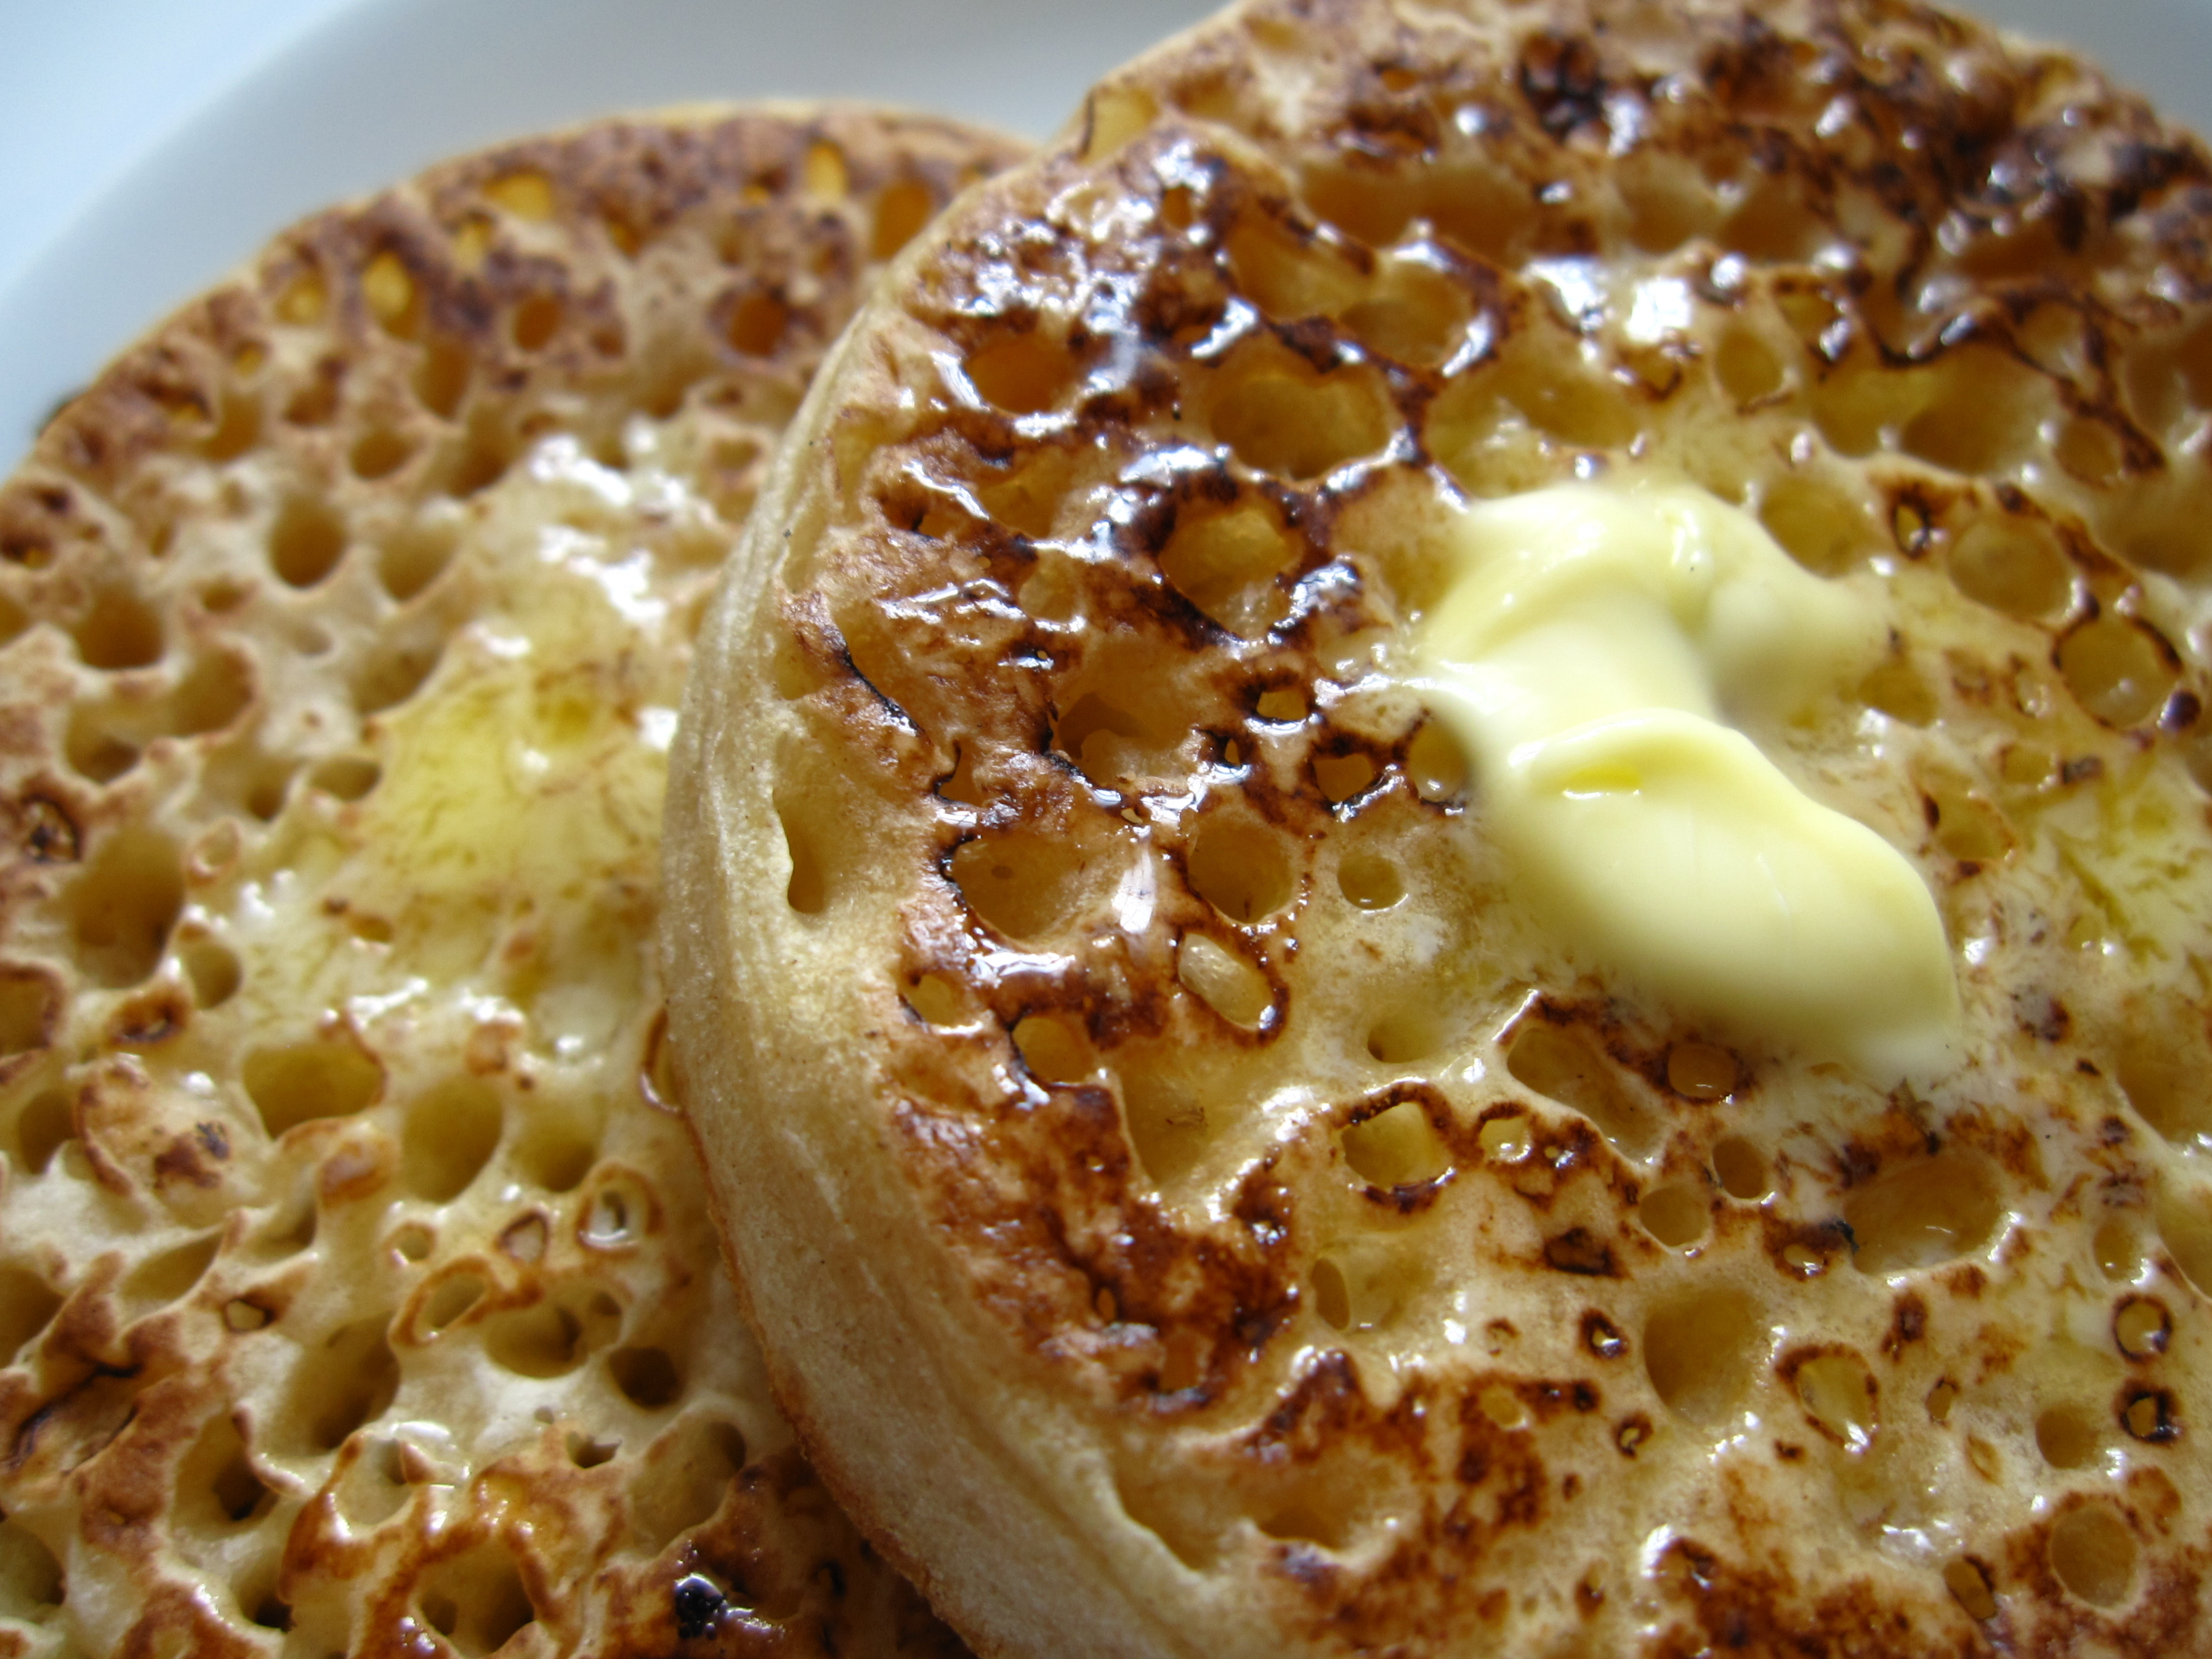 Buttered crumpets